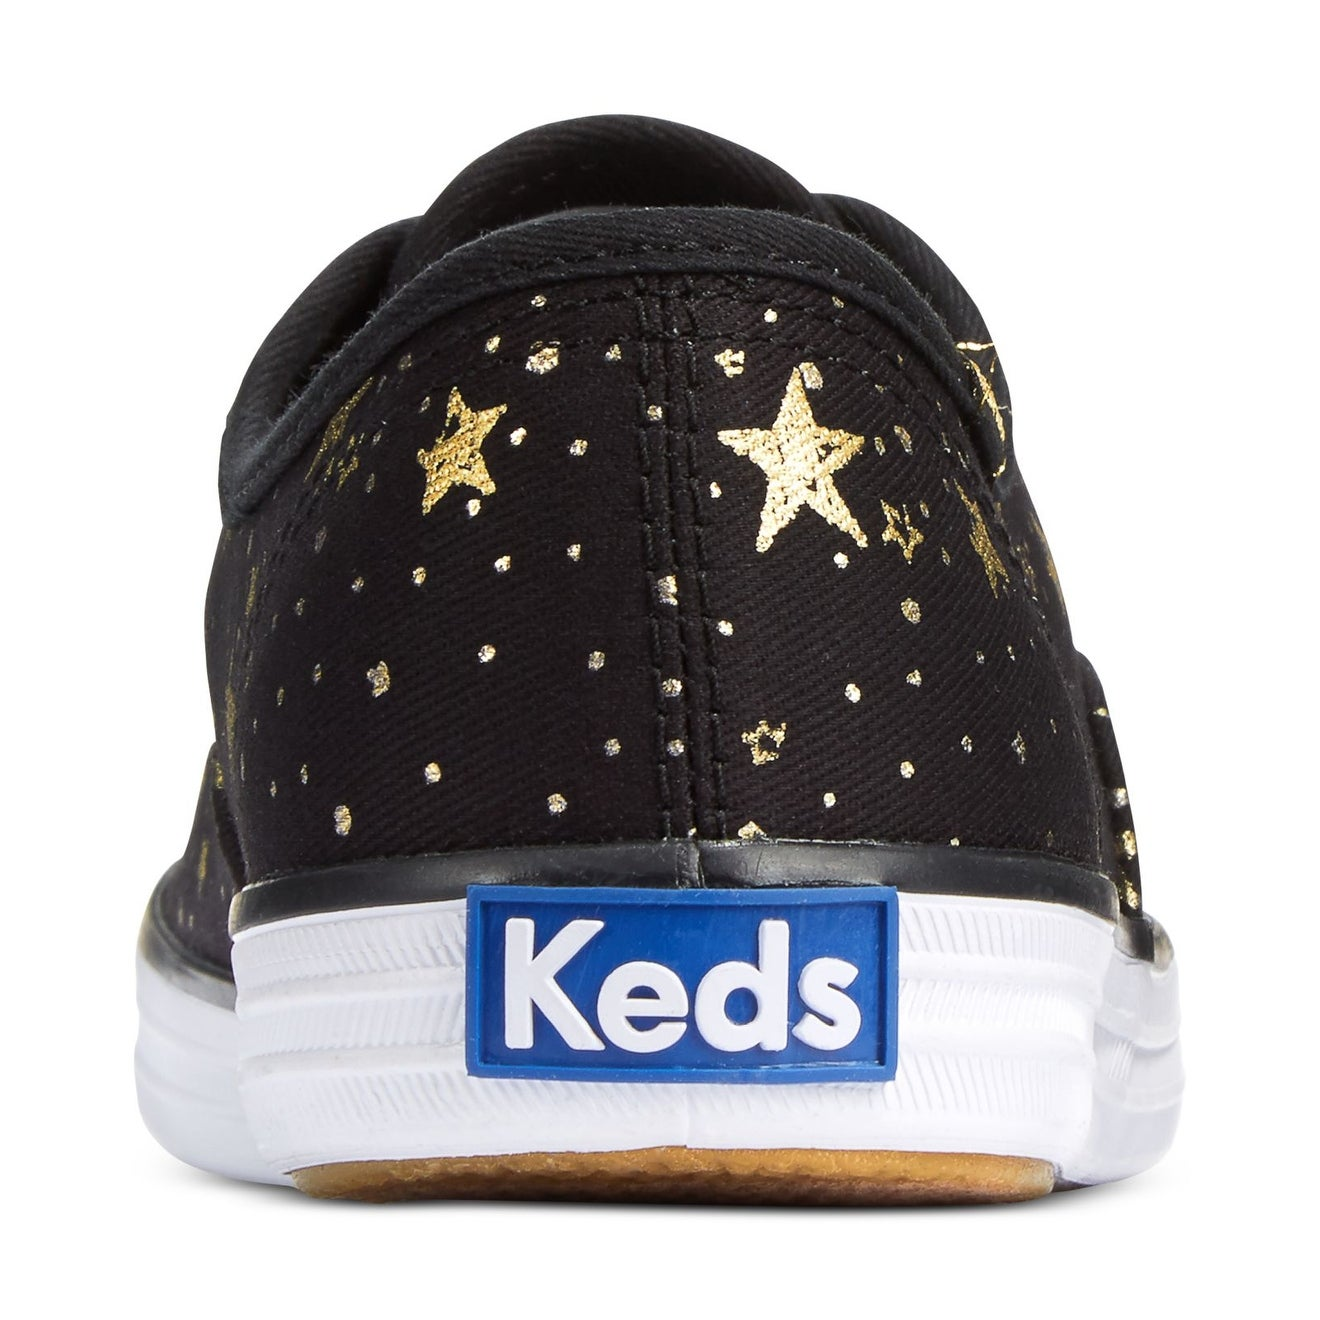 b7a70b6540b Shop Keds Womens Champion Celestial Canvas Low Top Lace Up Fashion Sneakers  - Free Shipping On Orders Over  45 - Overstock - 20895348